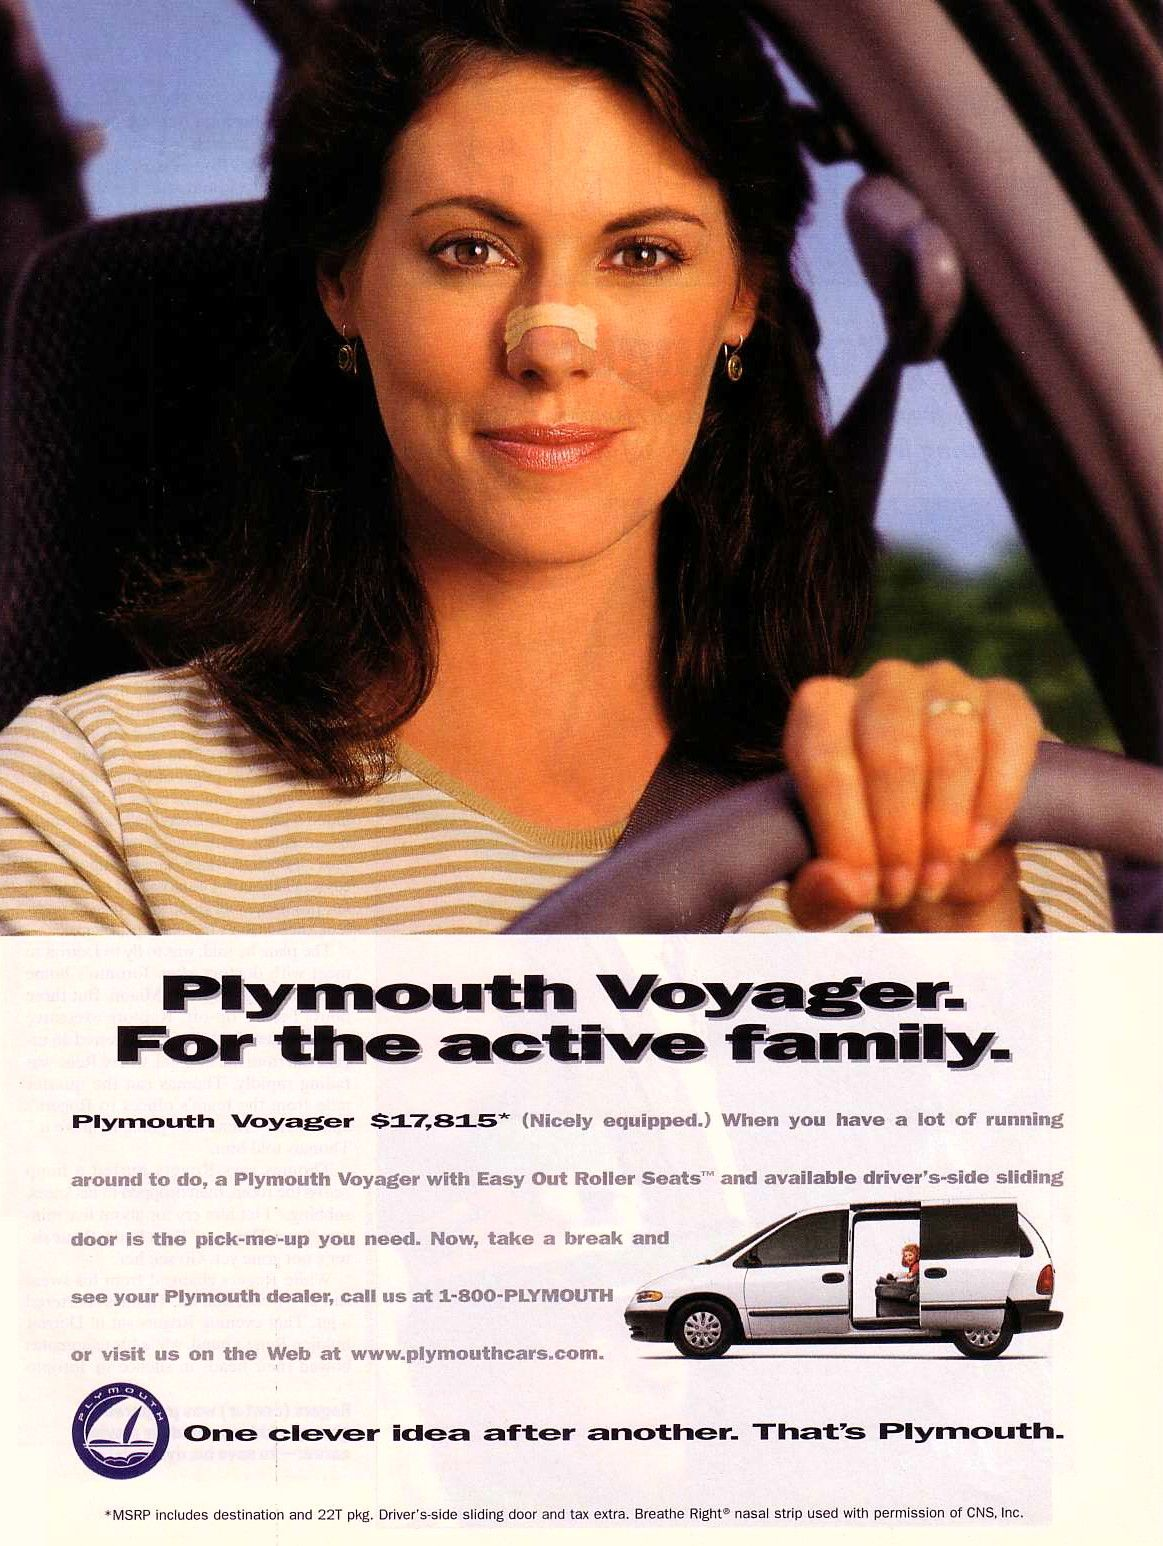 Plymouth Voyager. For the active family. Plymouth Voyager $17,815 (nicely equipped). When you have a lot of running around to do, a Plymouth Voyager with Easy Out Roller Seats and available driver's-side sliding door is the pick-me-up you need. Now, take a break and see your Plymouth dealer, call us at 1-800-PLYMOUTH ffED or visit us on the Web at www.plymouthcars.com. One clever idea after another. That's Plymouth.